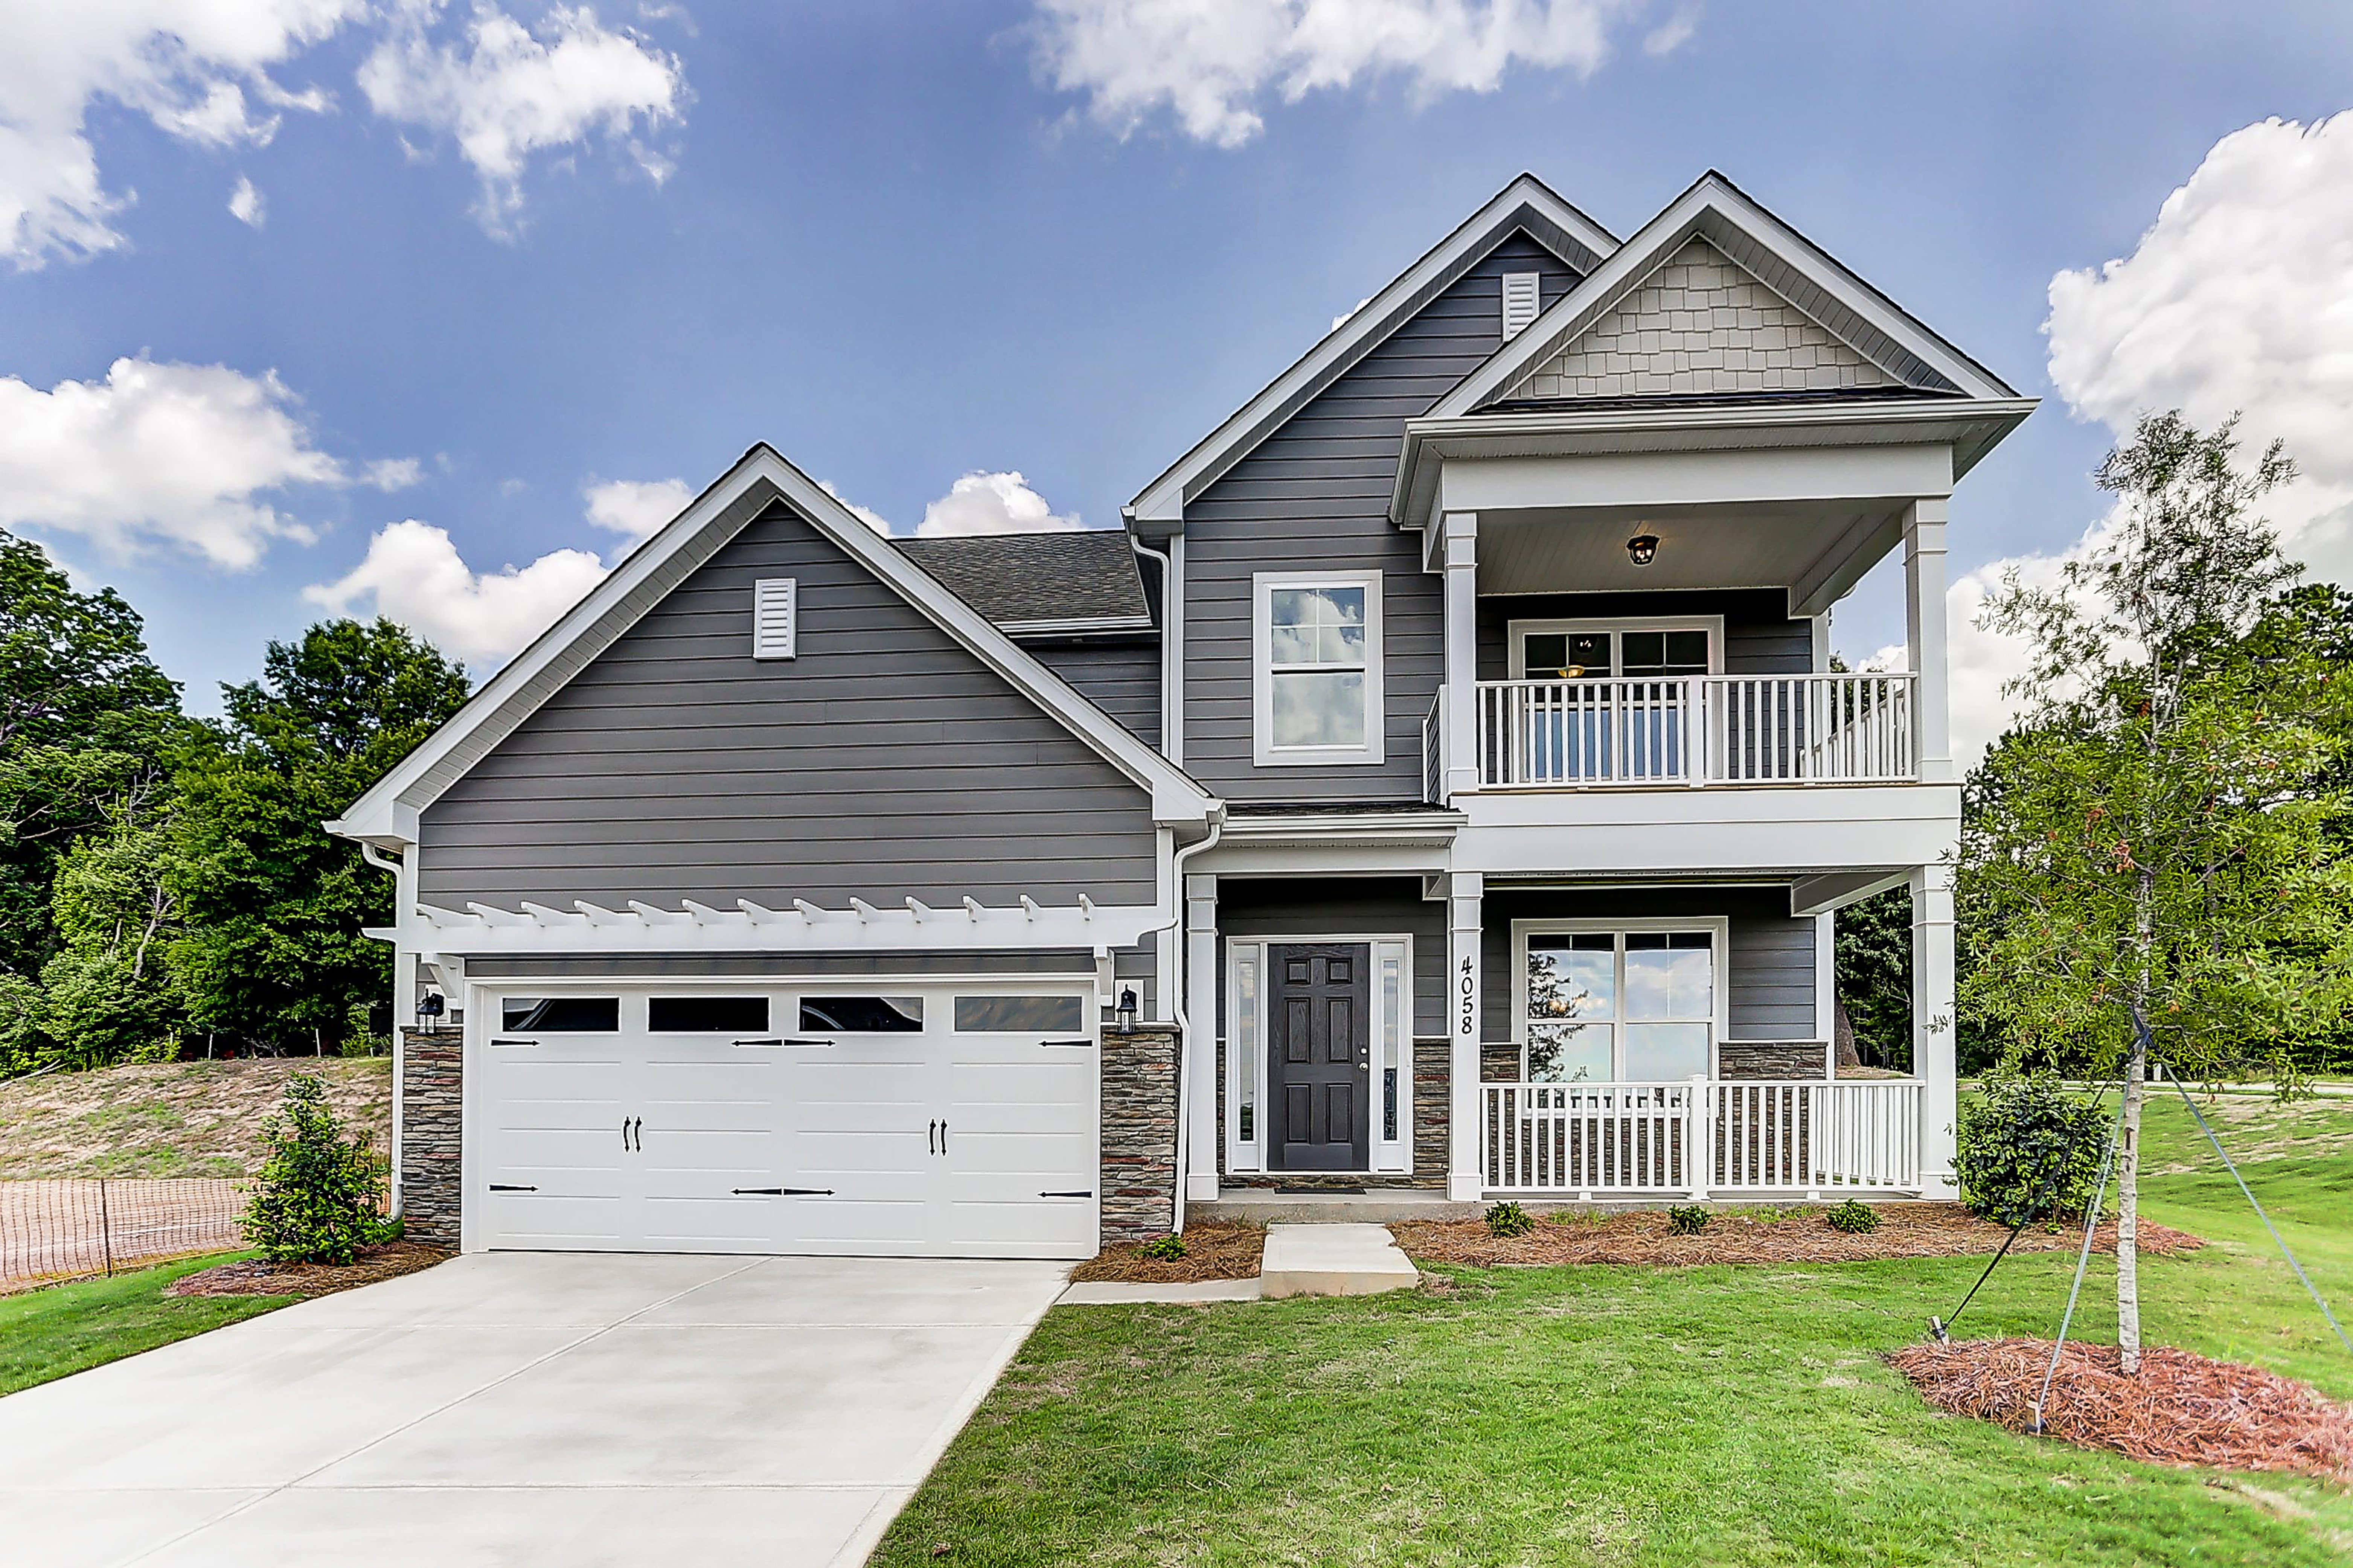 Eastwood Homes at Blythewood Crossing